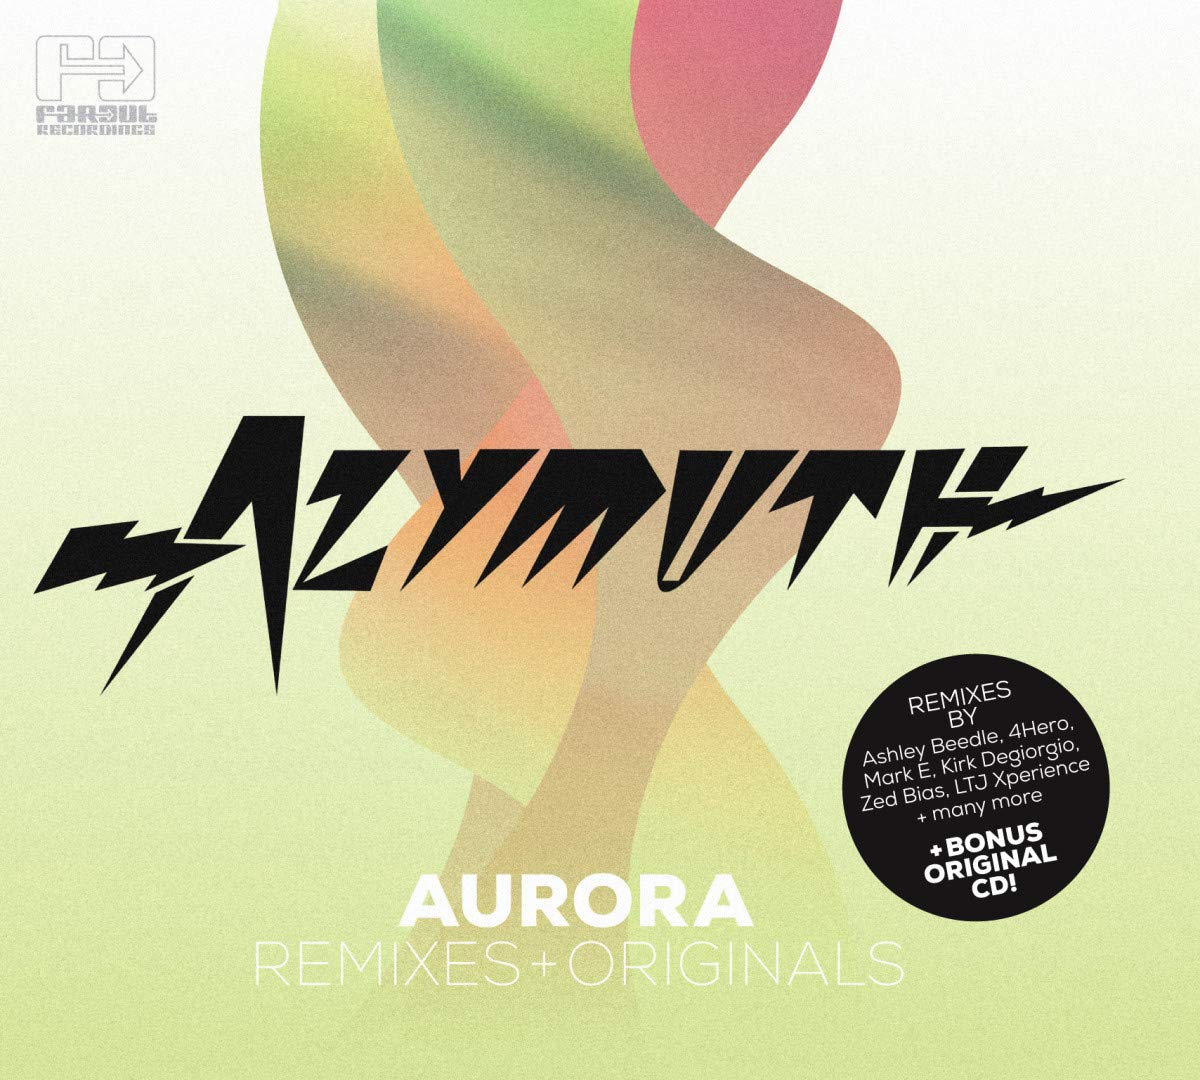 Aymuth - Aurora remixed